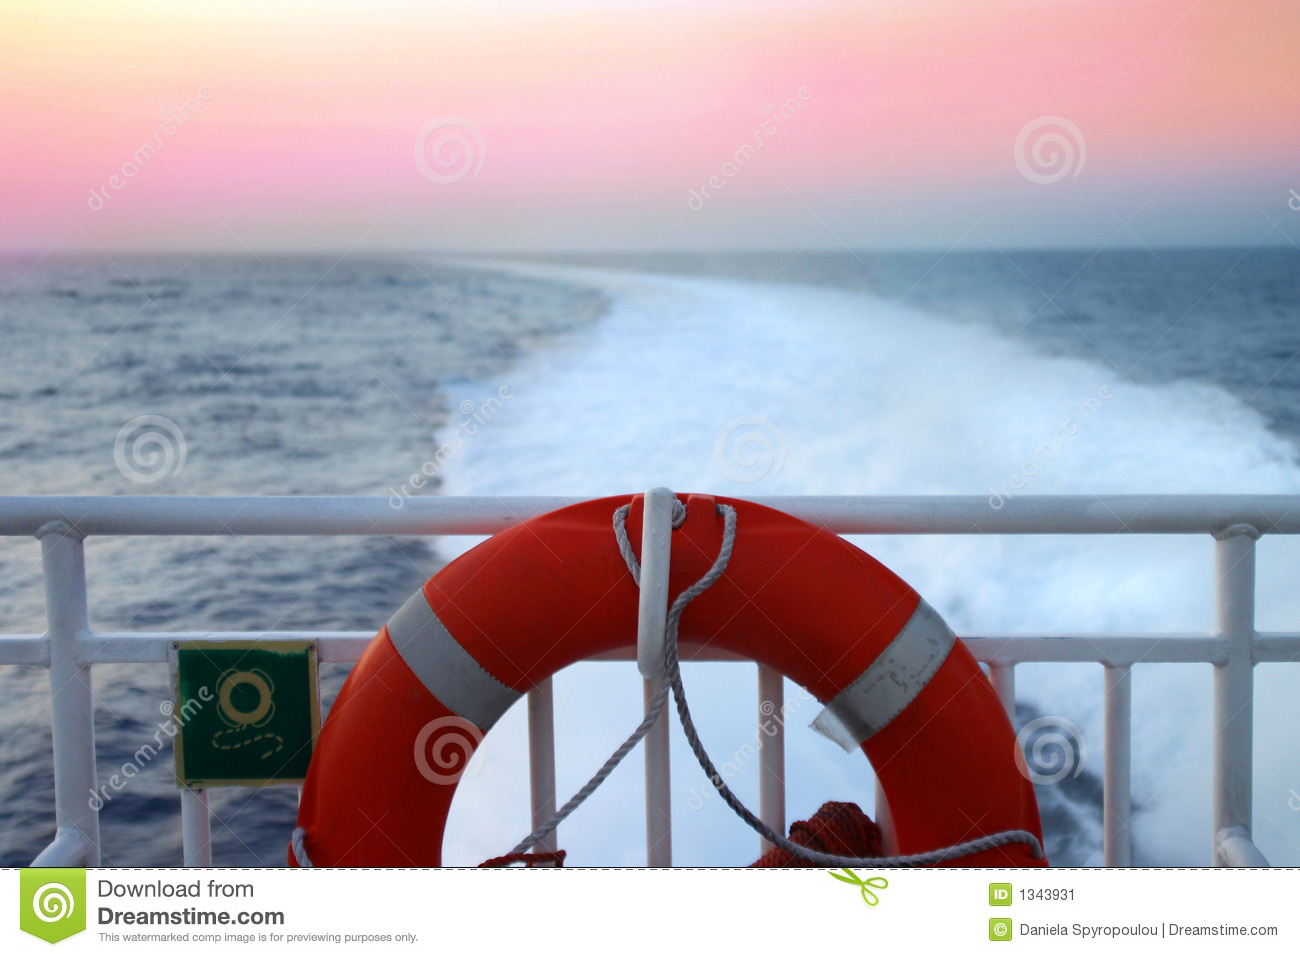 Travelling by sea